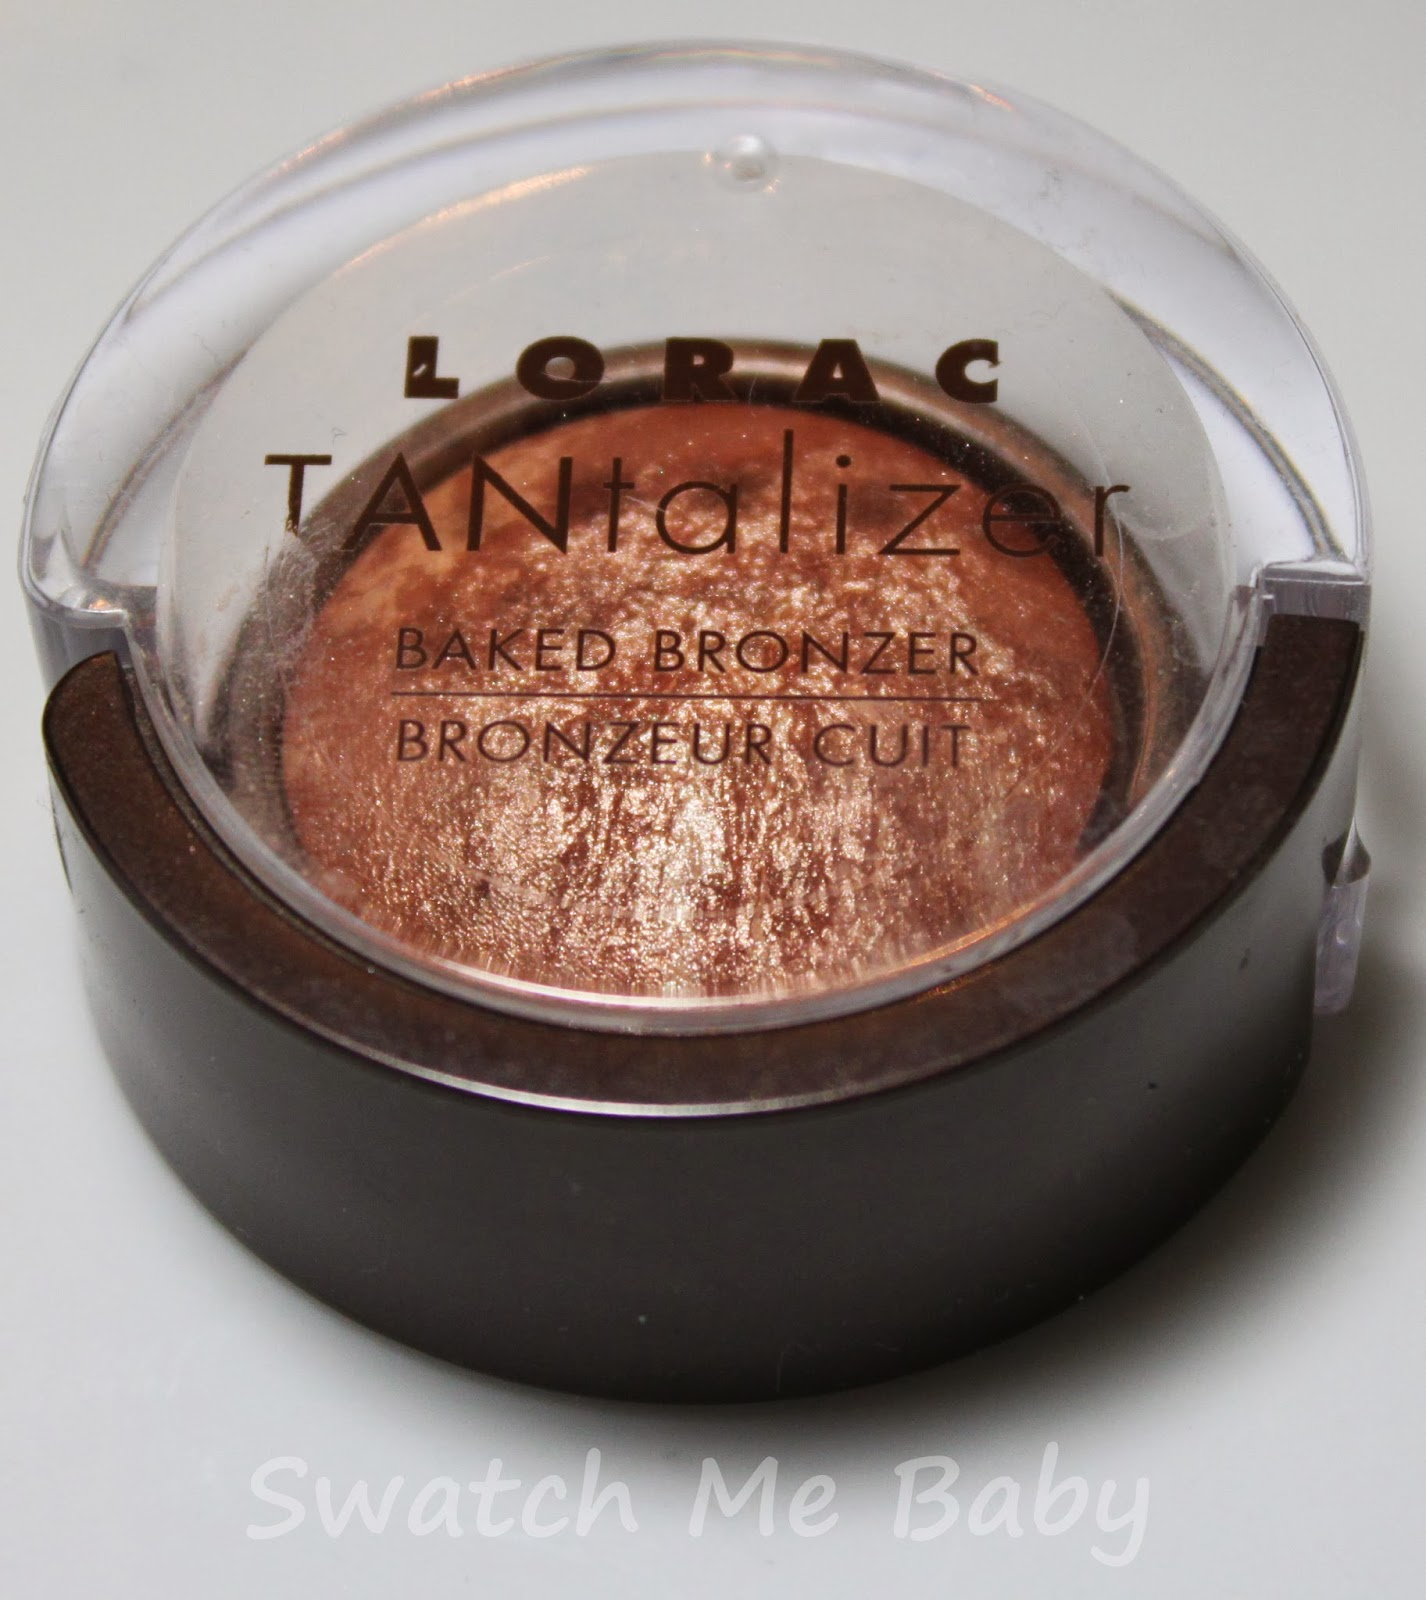 LORAC Travel-Size Tantalizer Baked Bronzer